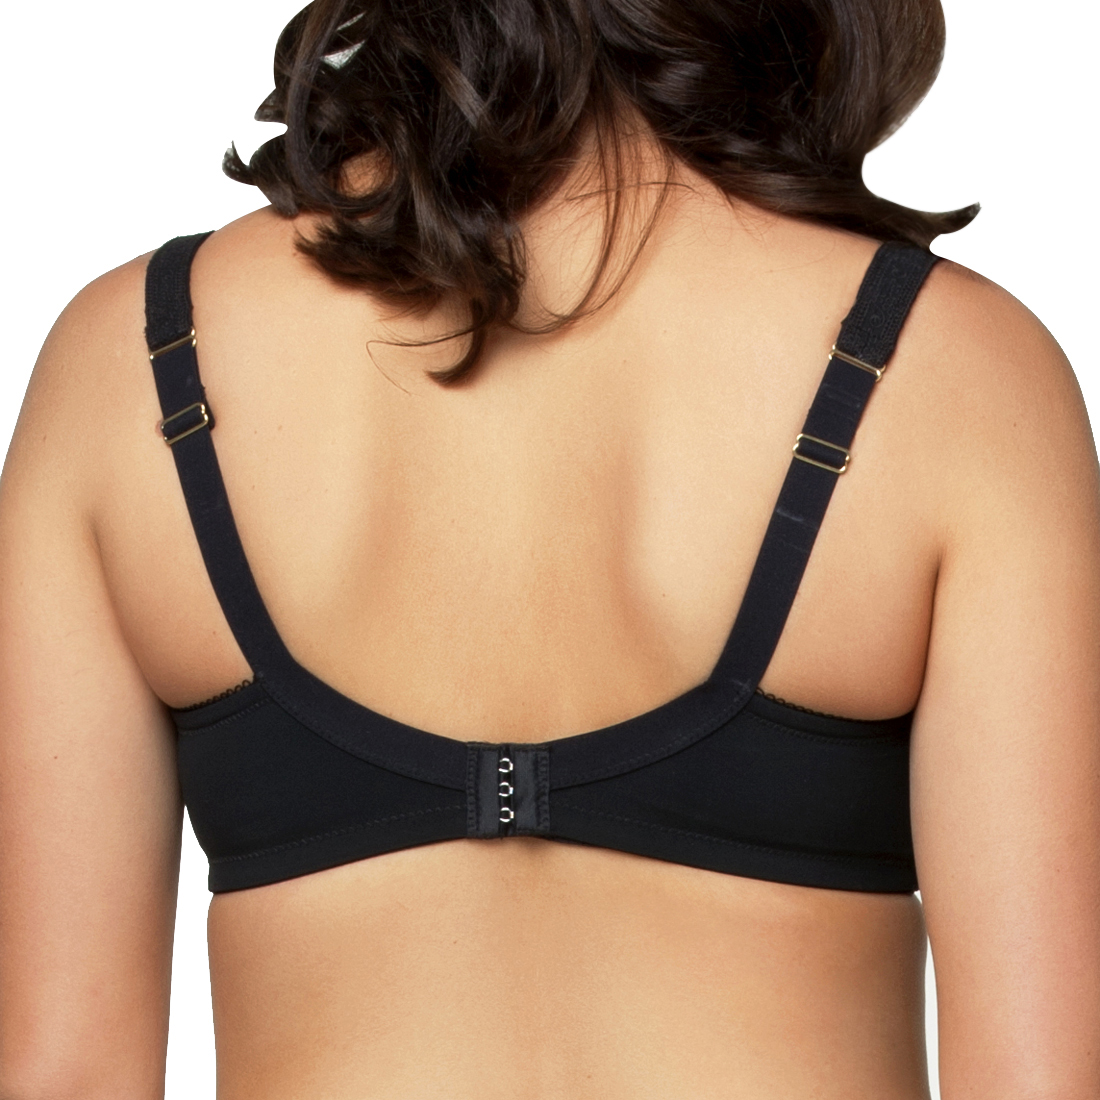 Dark Chocolate Flexiwire Nursing Bra